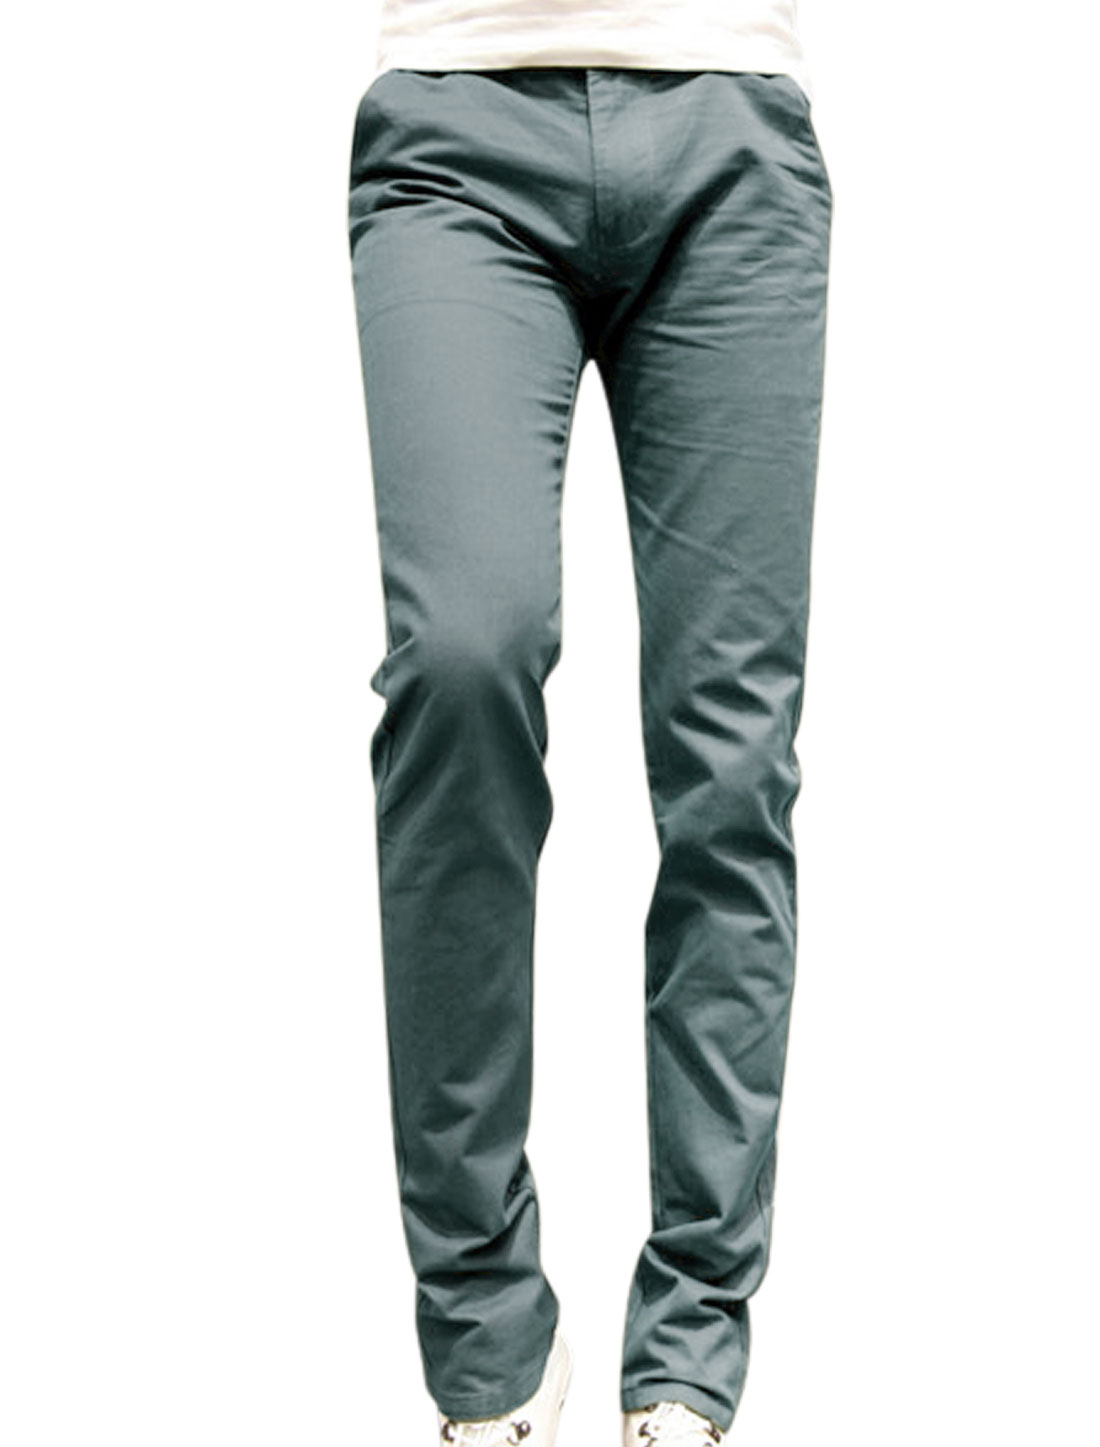 Mid Rise Slim Fit Button Closed Cool Gray Straight Leg Pants for Man W30